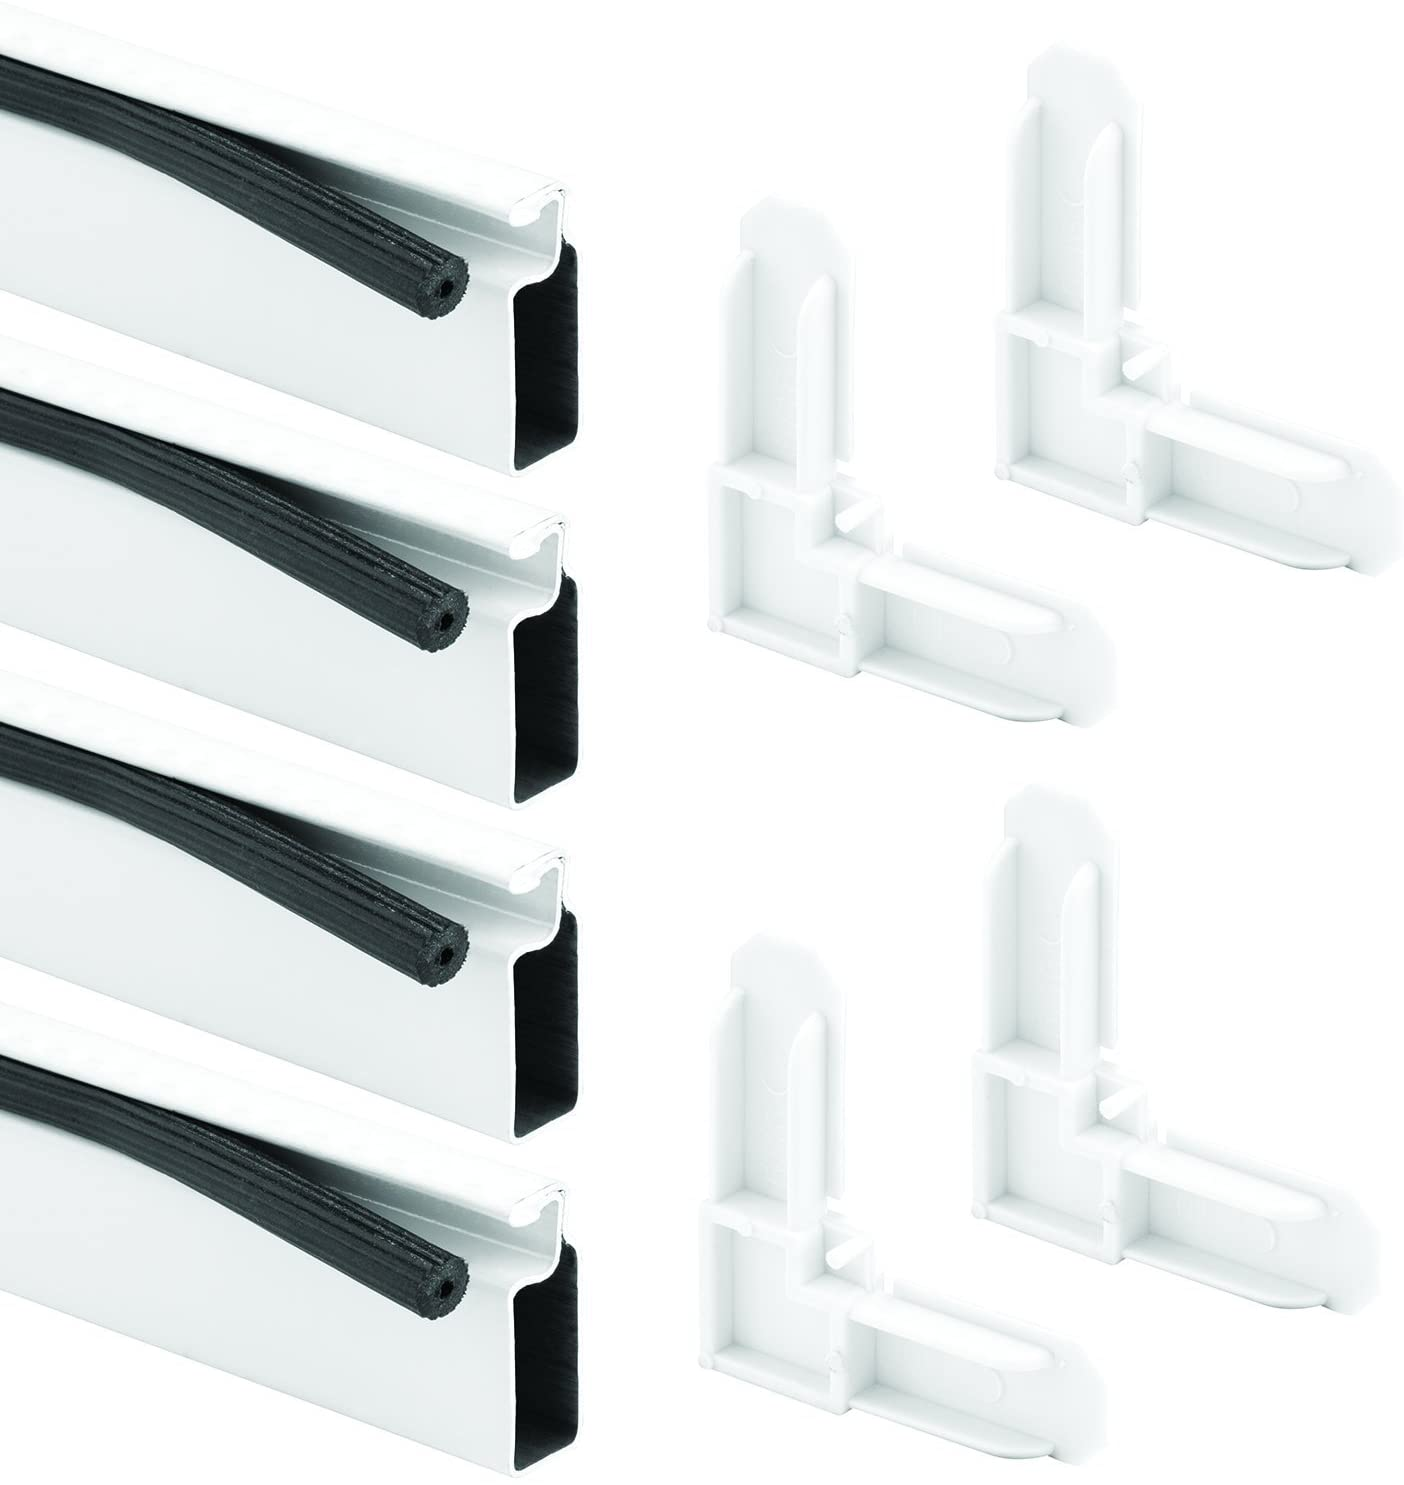 Prime Line Products Pl 7823 Screen Frame Kit 3 8 In X 3 4 In X 60 In X 60 In Aluminum Frame White Window Dressing Hardware Amazon Com